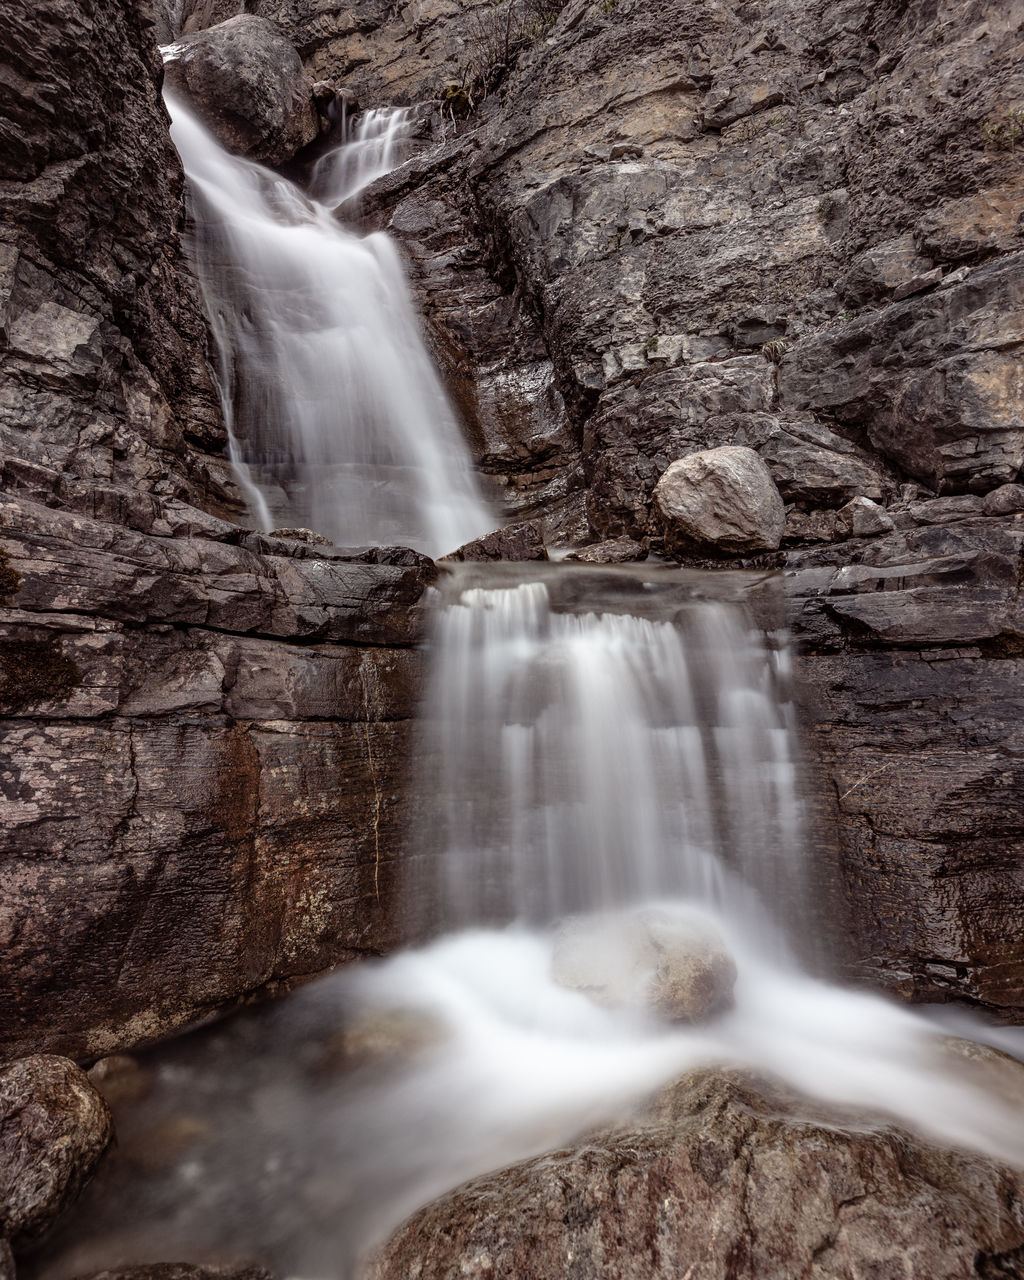 long exposure, waterfall, scenics - nature, rock, flowing water, motion, water, rock - object, blurred motion, beauty in nature, solid, rock formation, nature, no people, flowing, day, land, environment, non-urban scene, falling water, outdoors, power in nature, purity